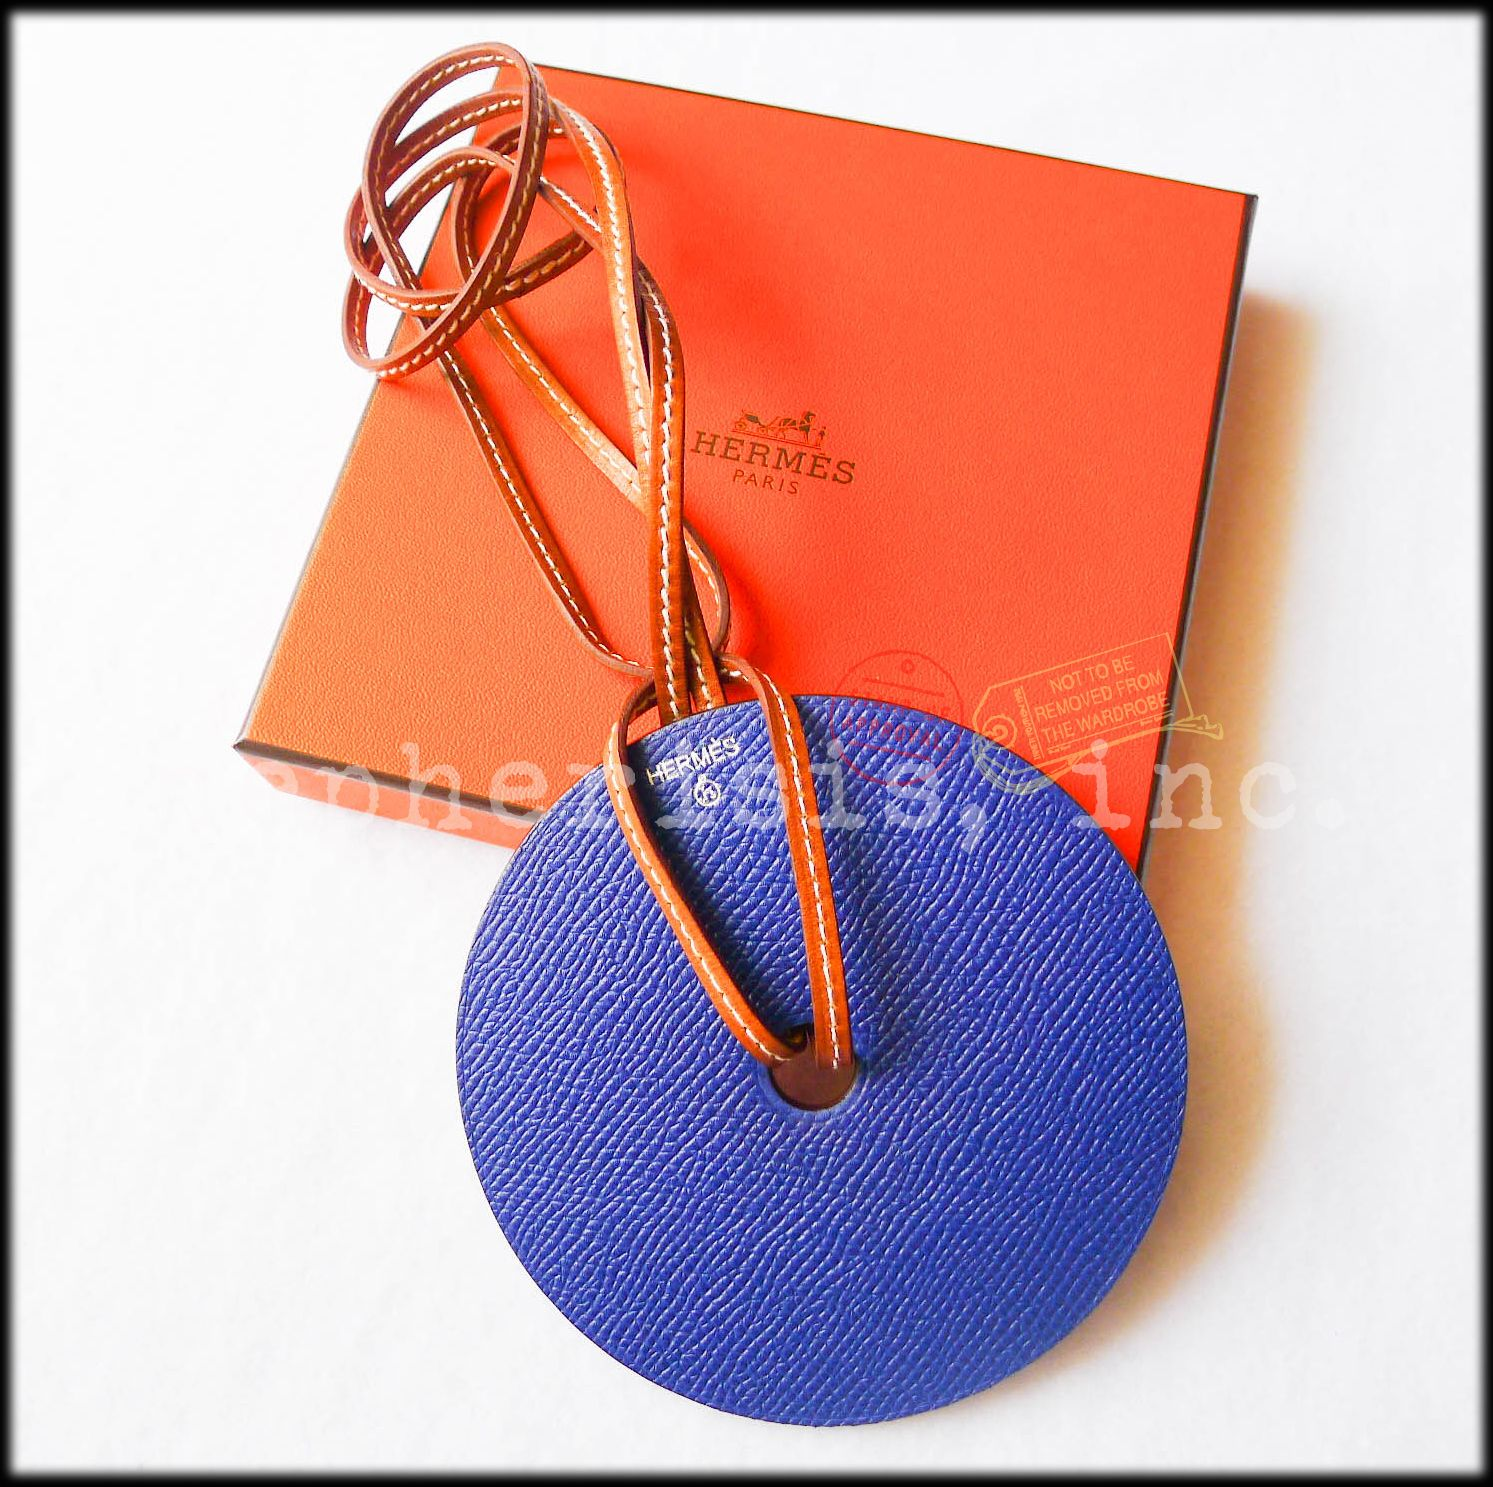 Hermes large round reversible leather pendant necklace. Blue electric/red. New condition with Hermes box & ribbon.